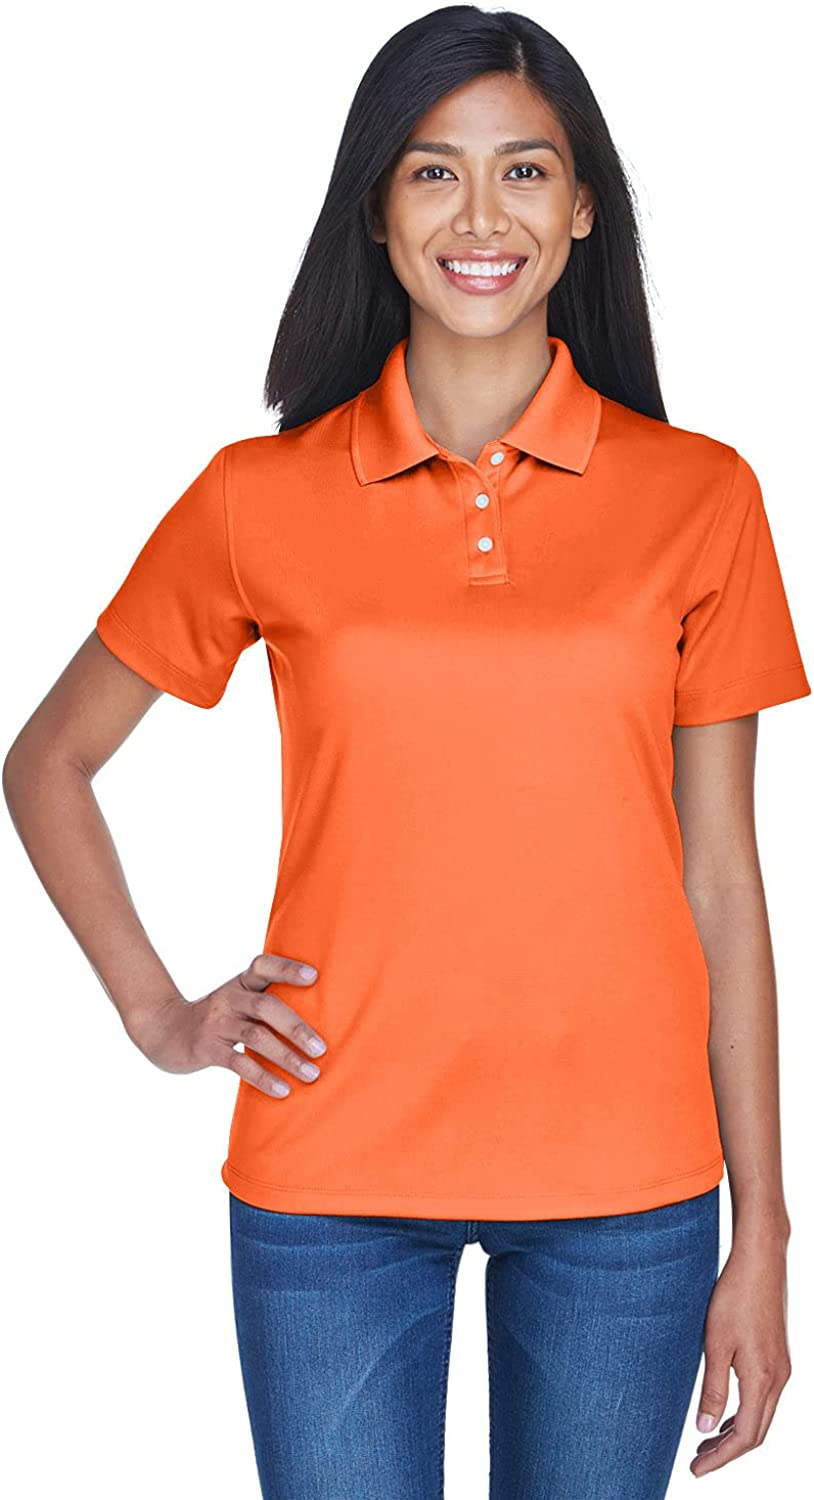 Ultraclub Ladies Cool & Dry Stain-Release Performance Polo 8445L -Orange 2XL